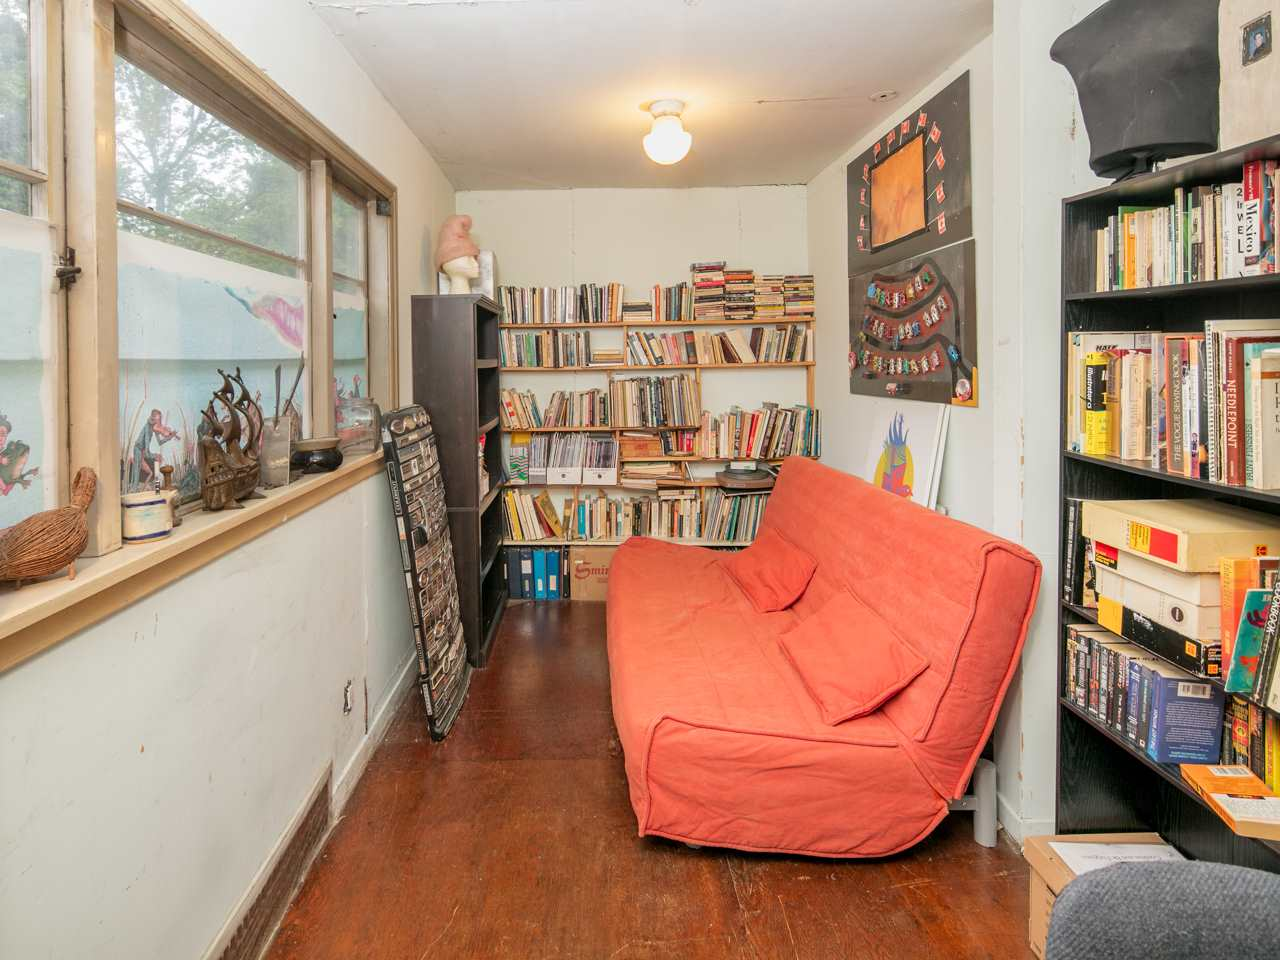 Photo 9: 450 HEATLEY Avenue in Vancouver: Mount Pleasant VE House for sale (Vancouver East)  : MLS® # R2166102